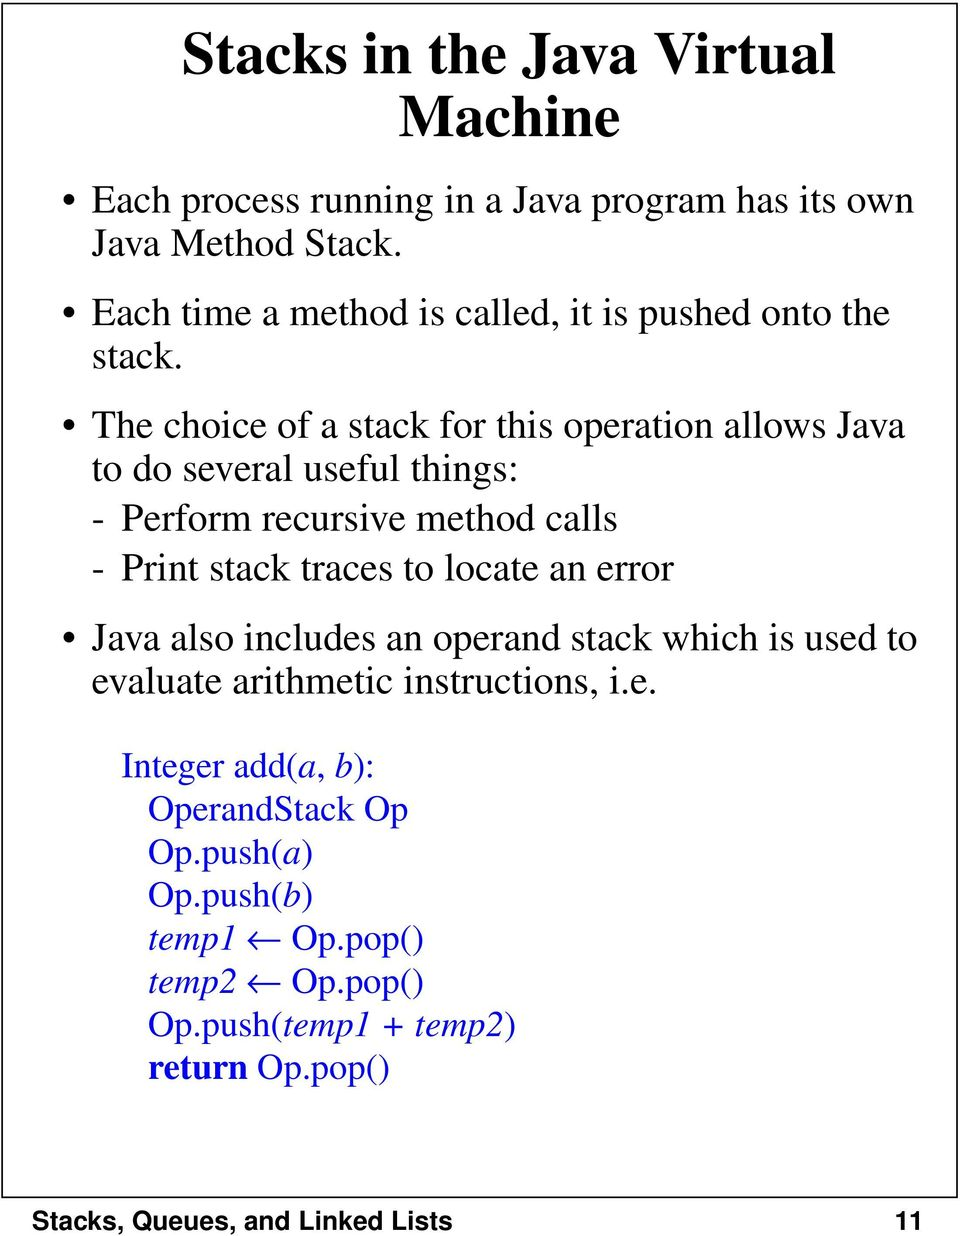 The choice of a stack for this operation allows Java to do several useful things: - Perform recursive method calls - Print stack